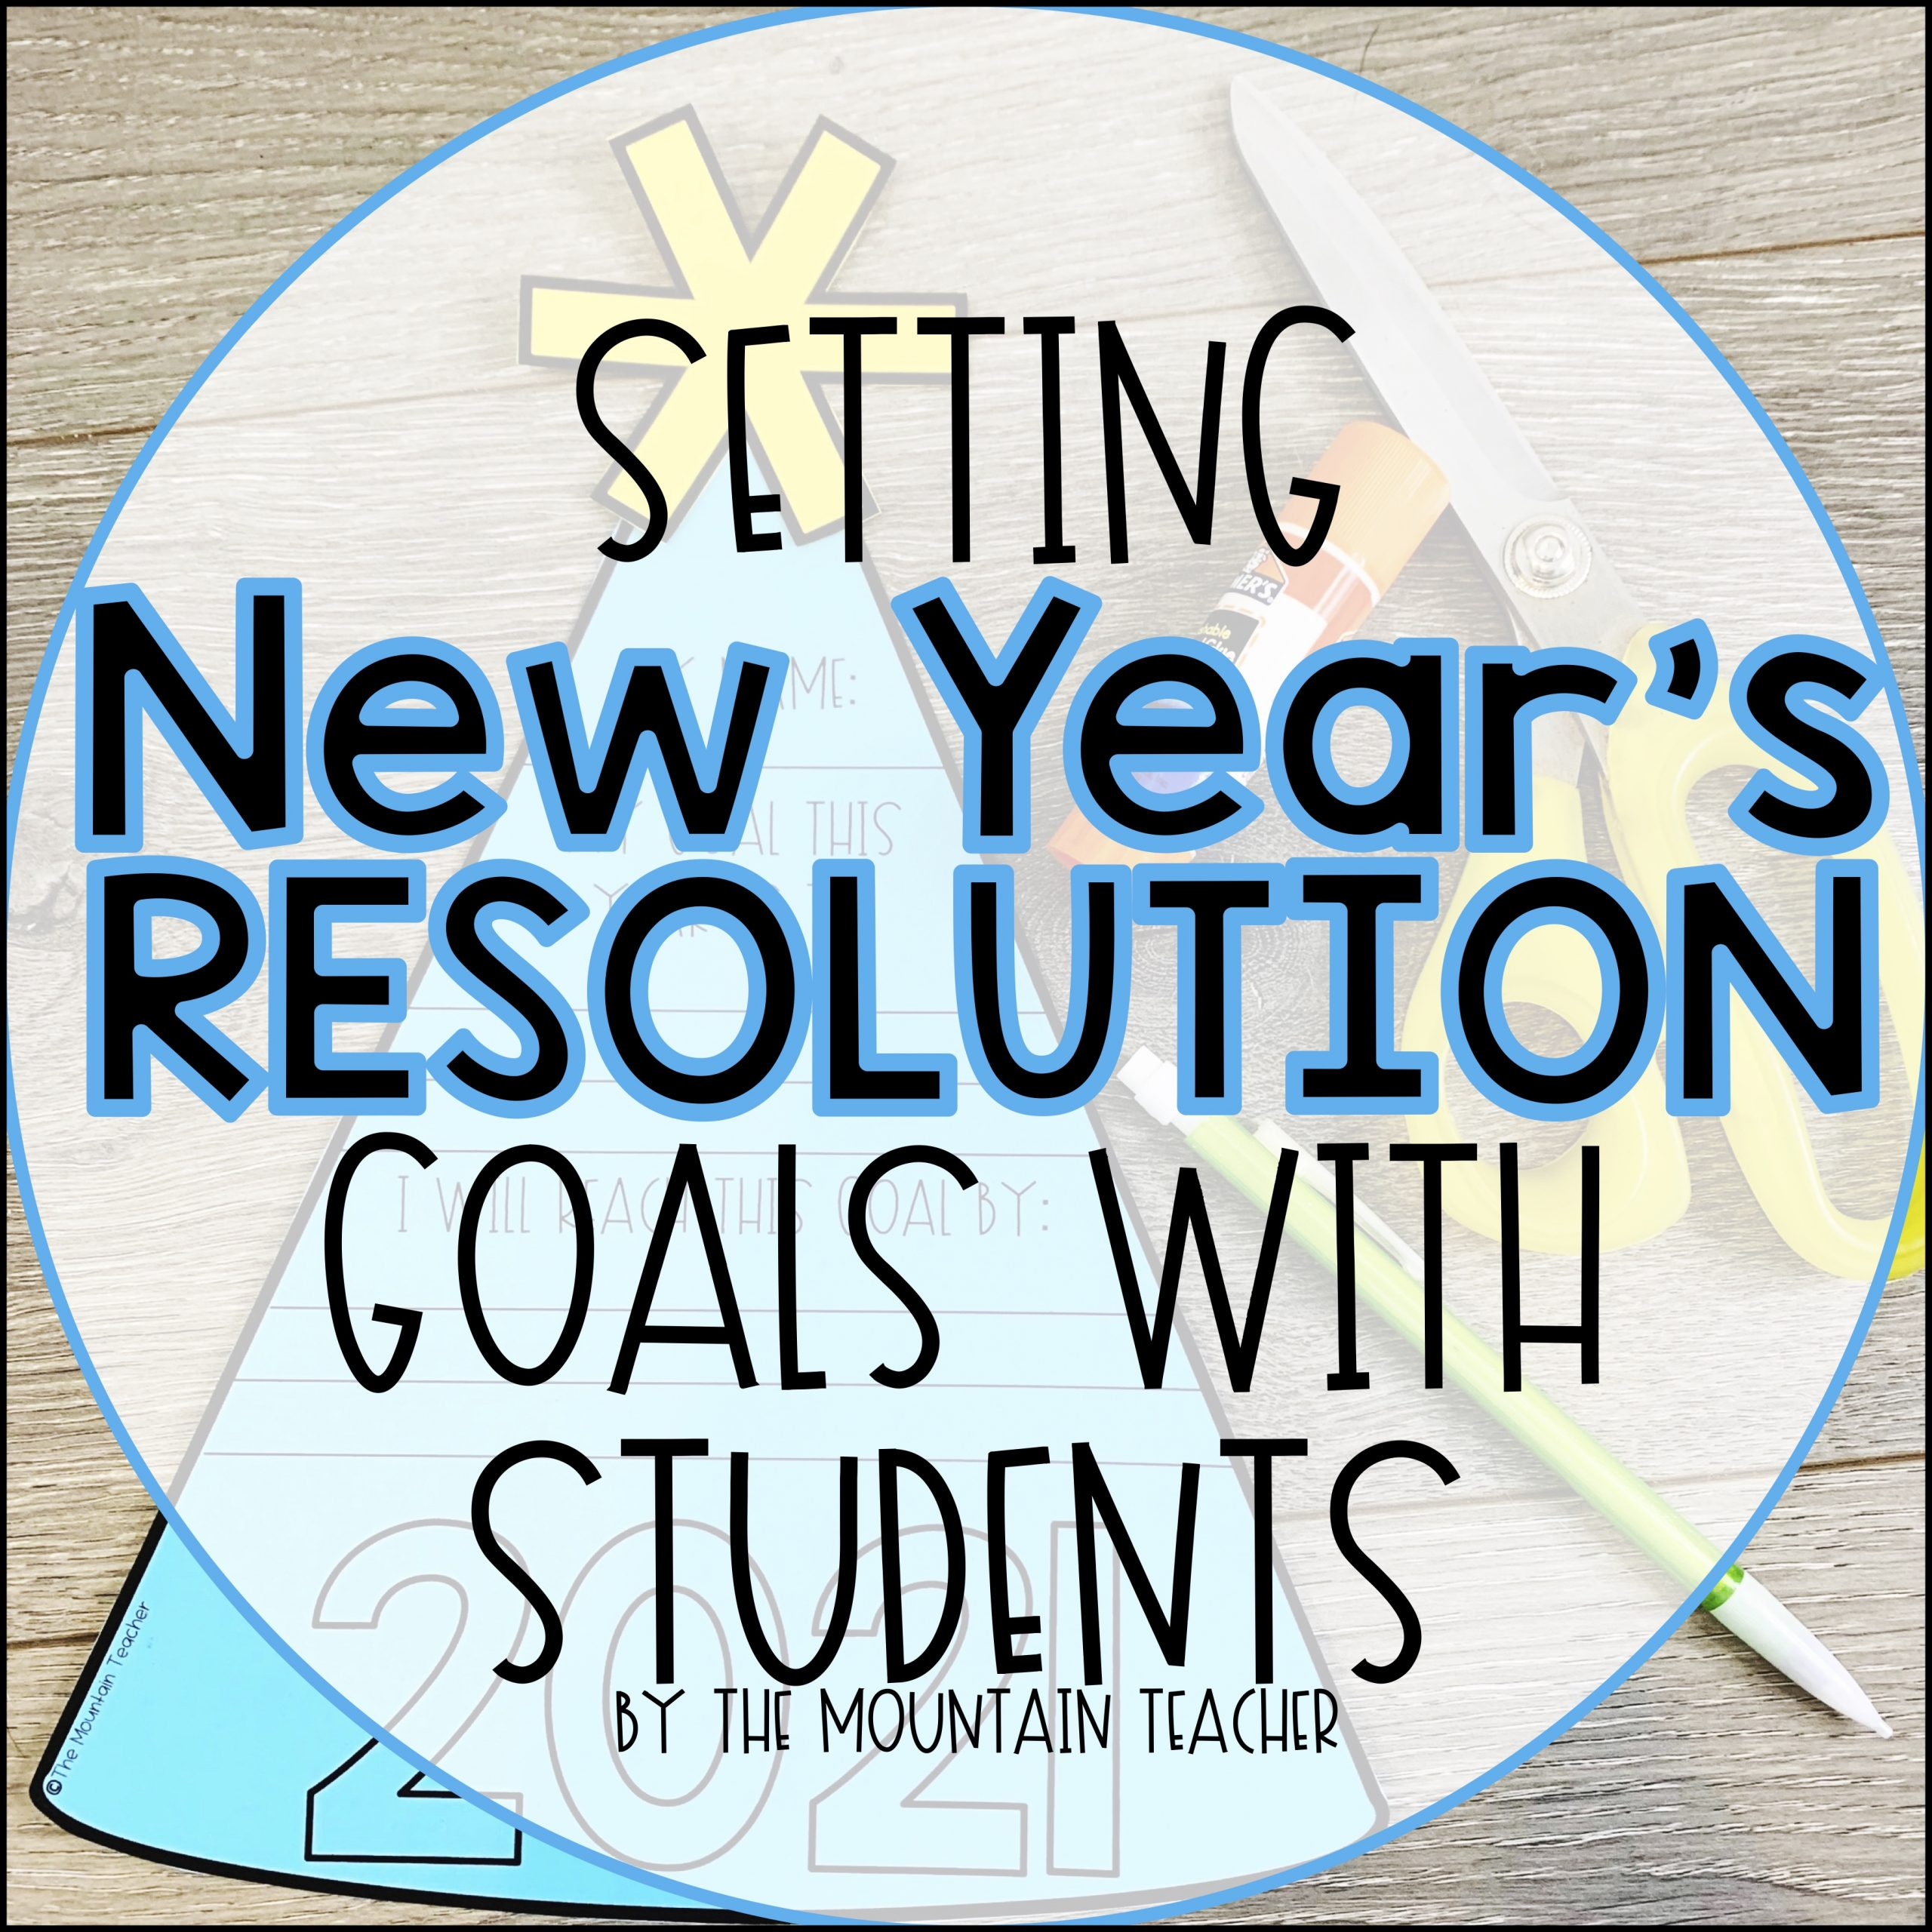 Setting new years resolution goals with students